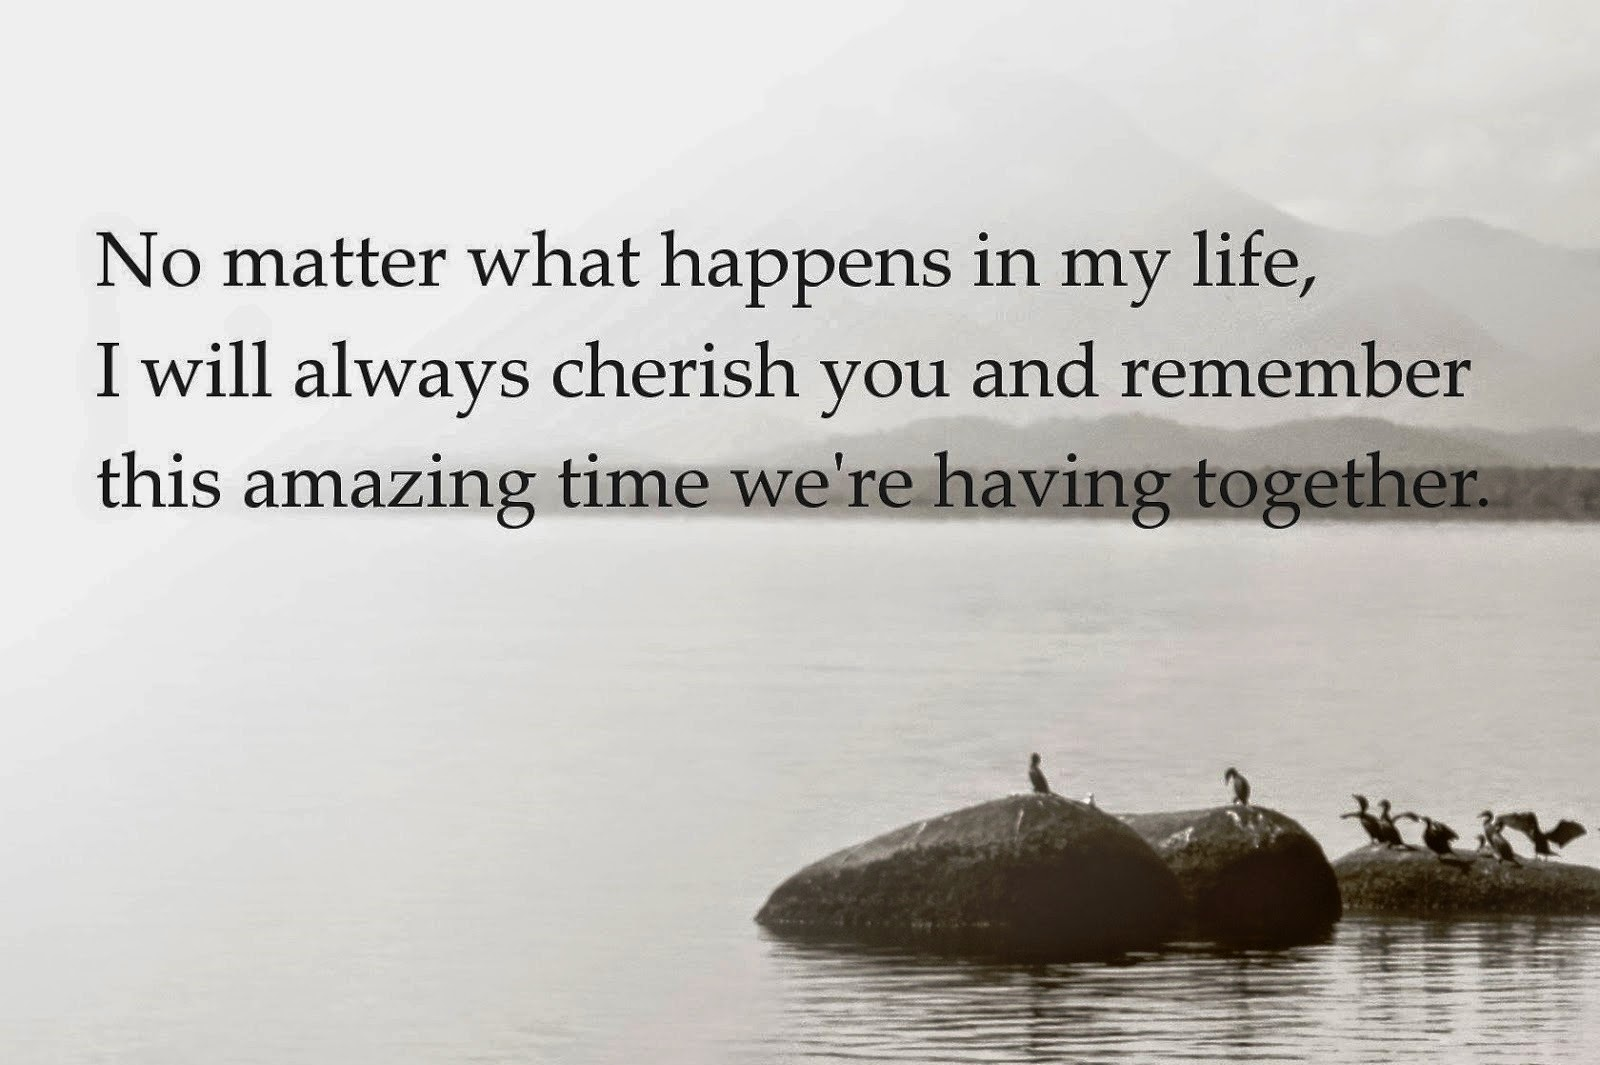 No matter what happens in my life, I will always cherish you and remember this amazing time we're having together.